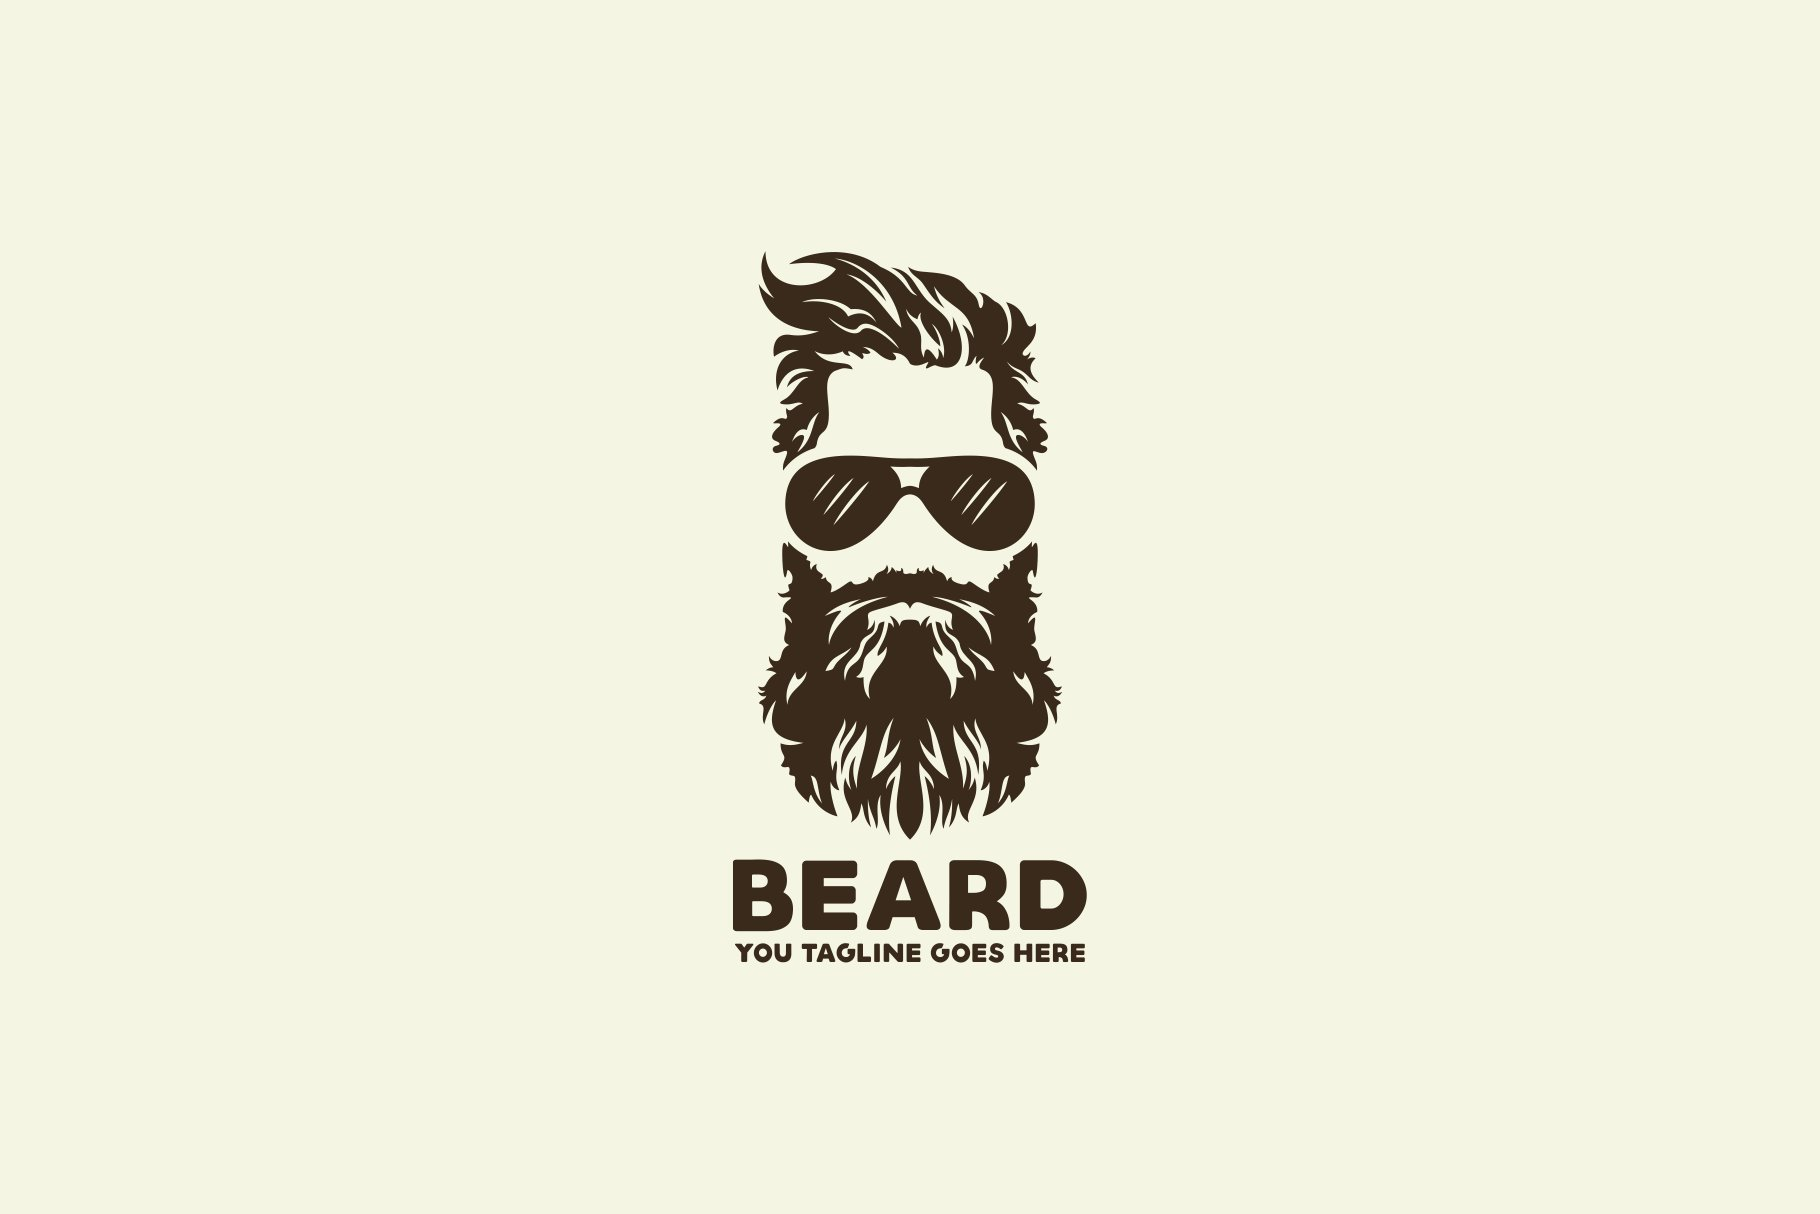 beard logo creative illustrator templates creative market beard logo